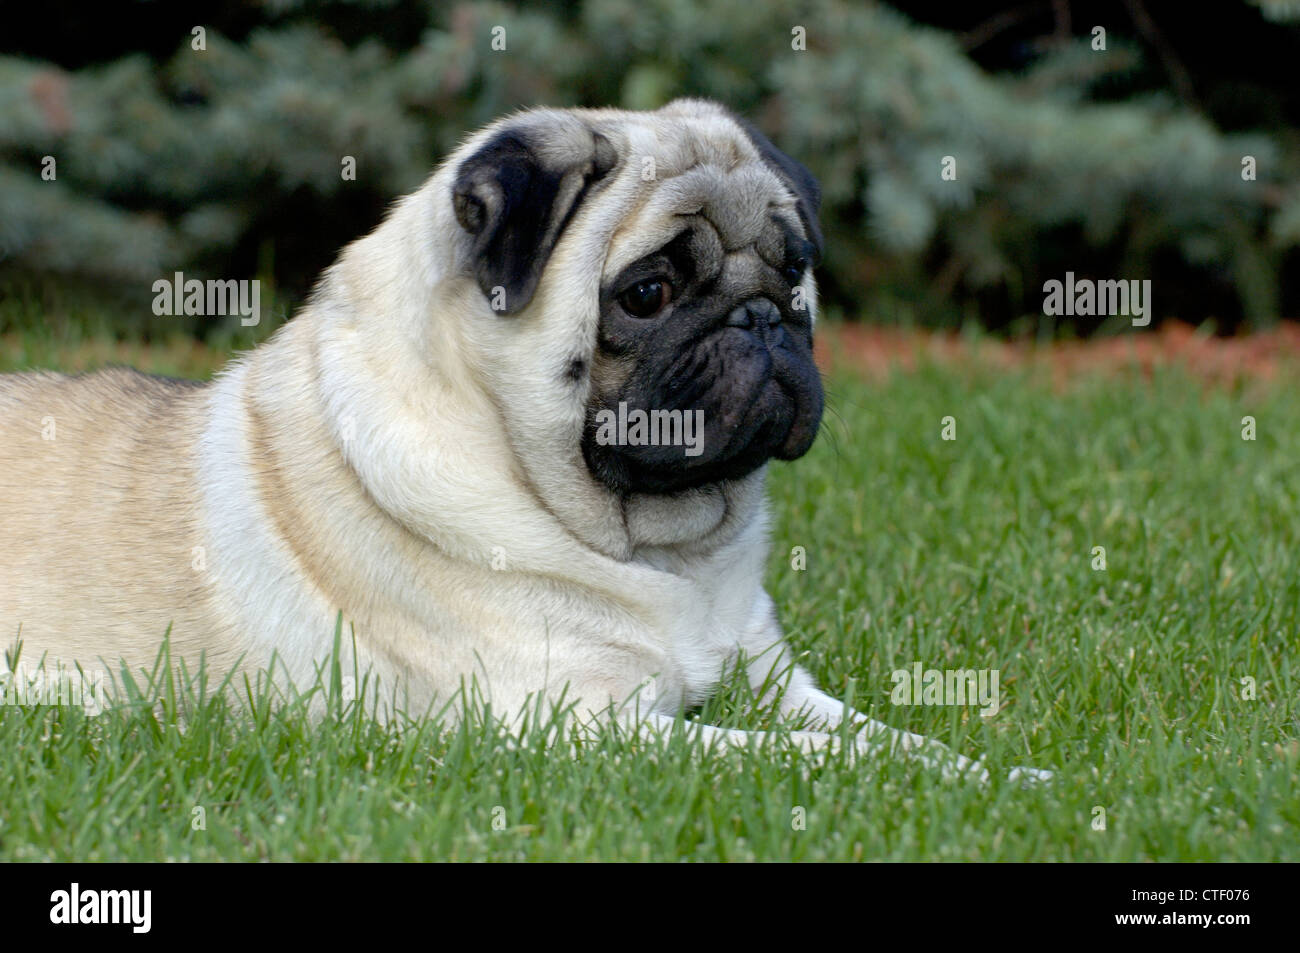 Pug lying down in grass - Stock Image